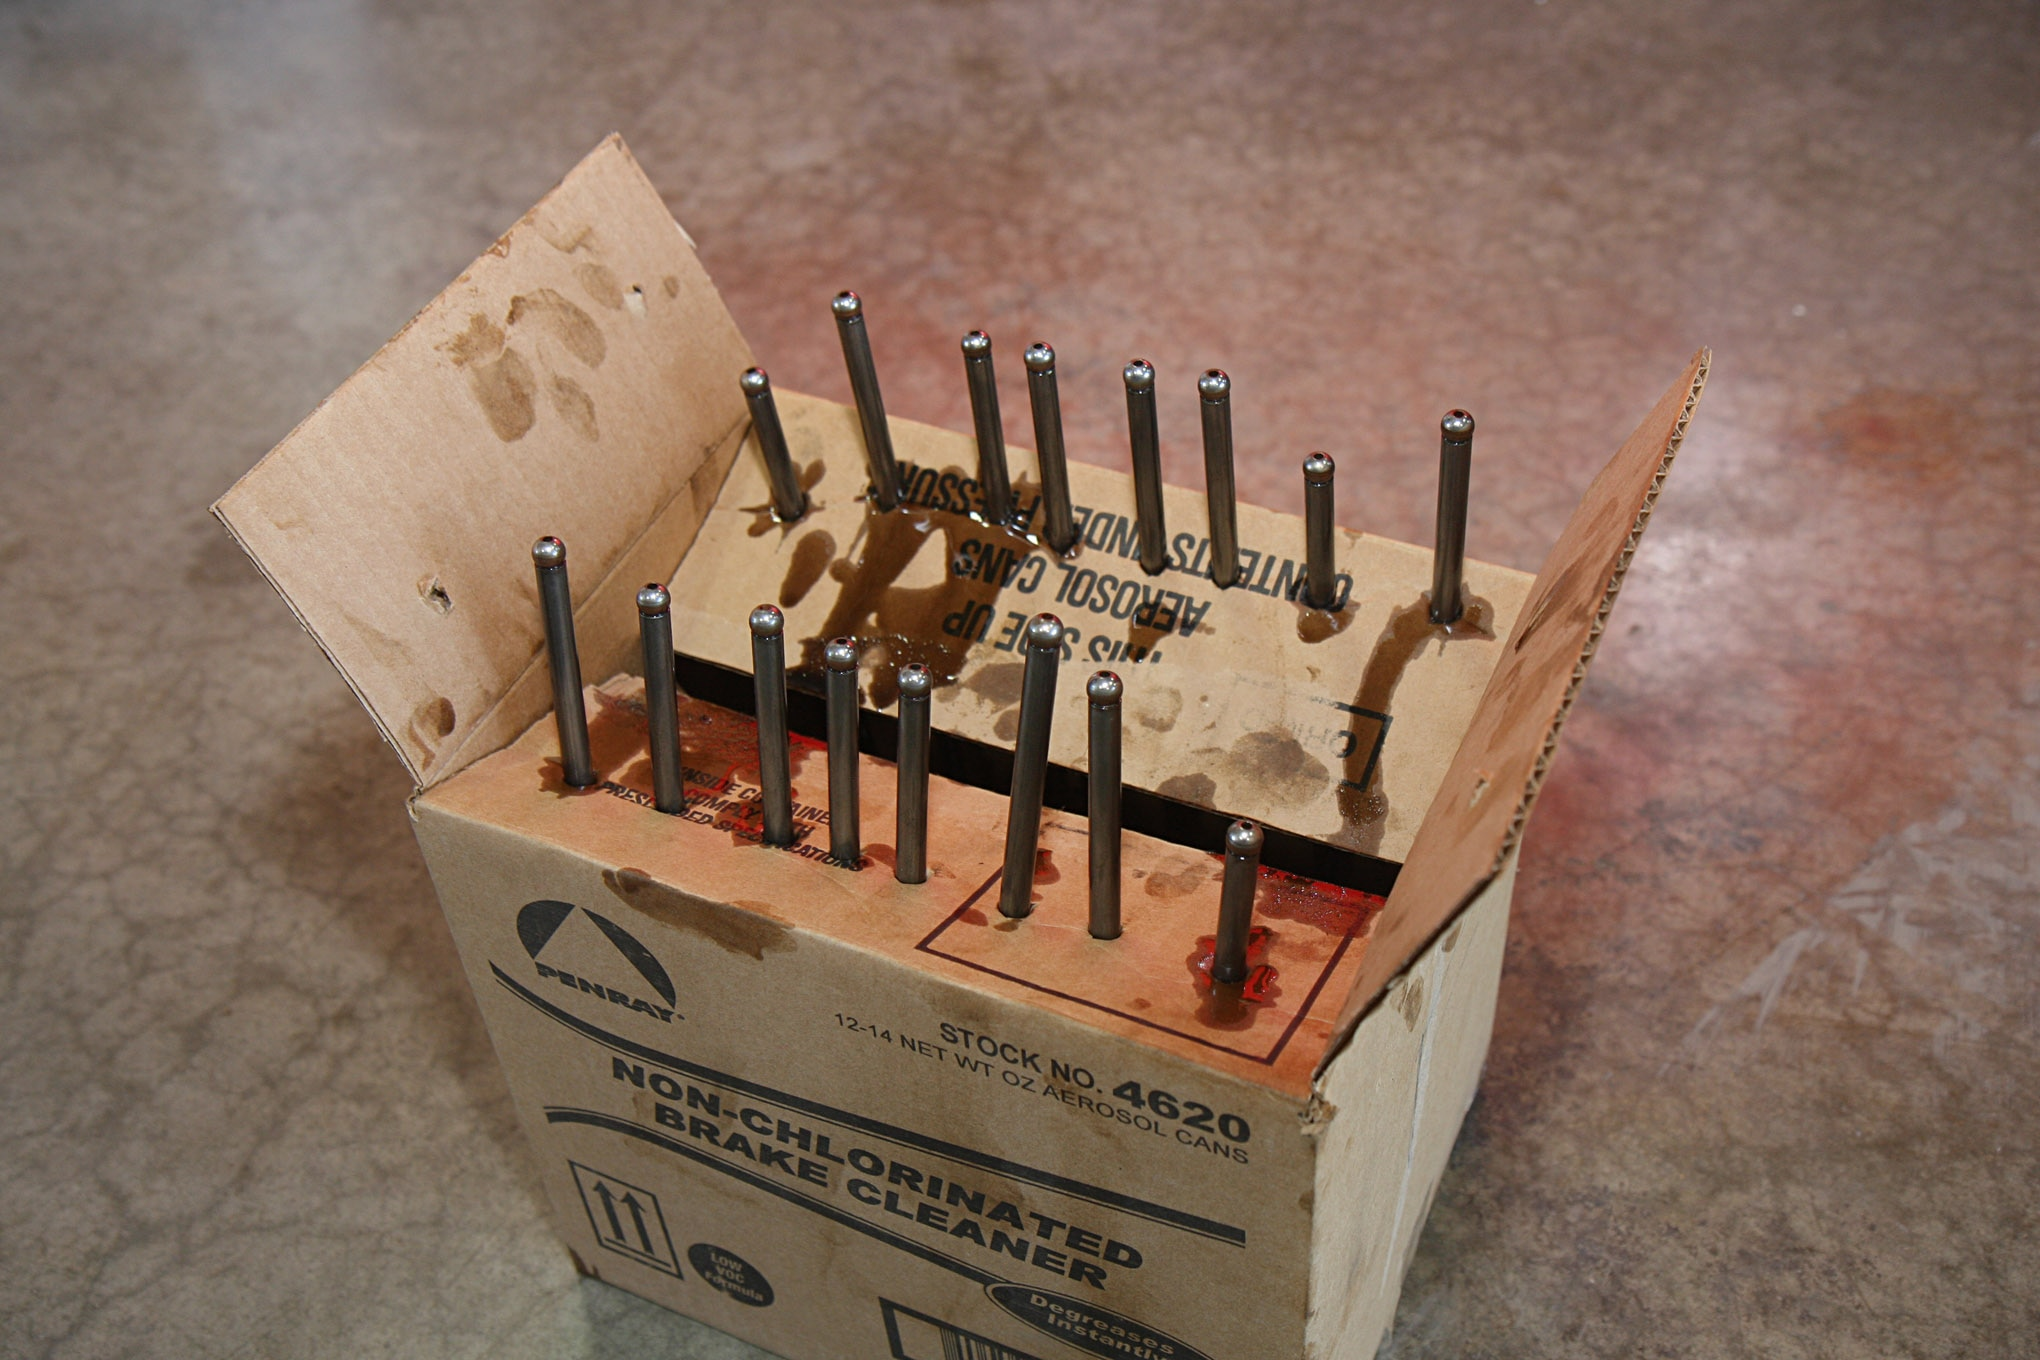 To keep everything in the valvetrain in perfect sync, all 16 pushrods are arranged (in the upside down cardboard box shown) in the same position they were on the engine. The same was done for the rocker arms and valve bridges. You never want to let an unrelated engine repair disrupt valvetrain components that were operating in perfect harmony.